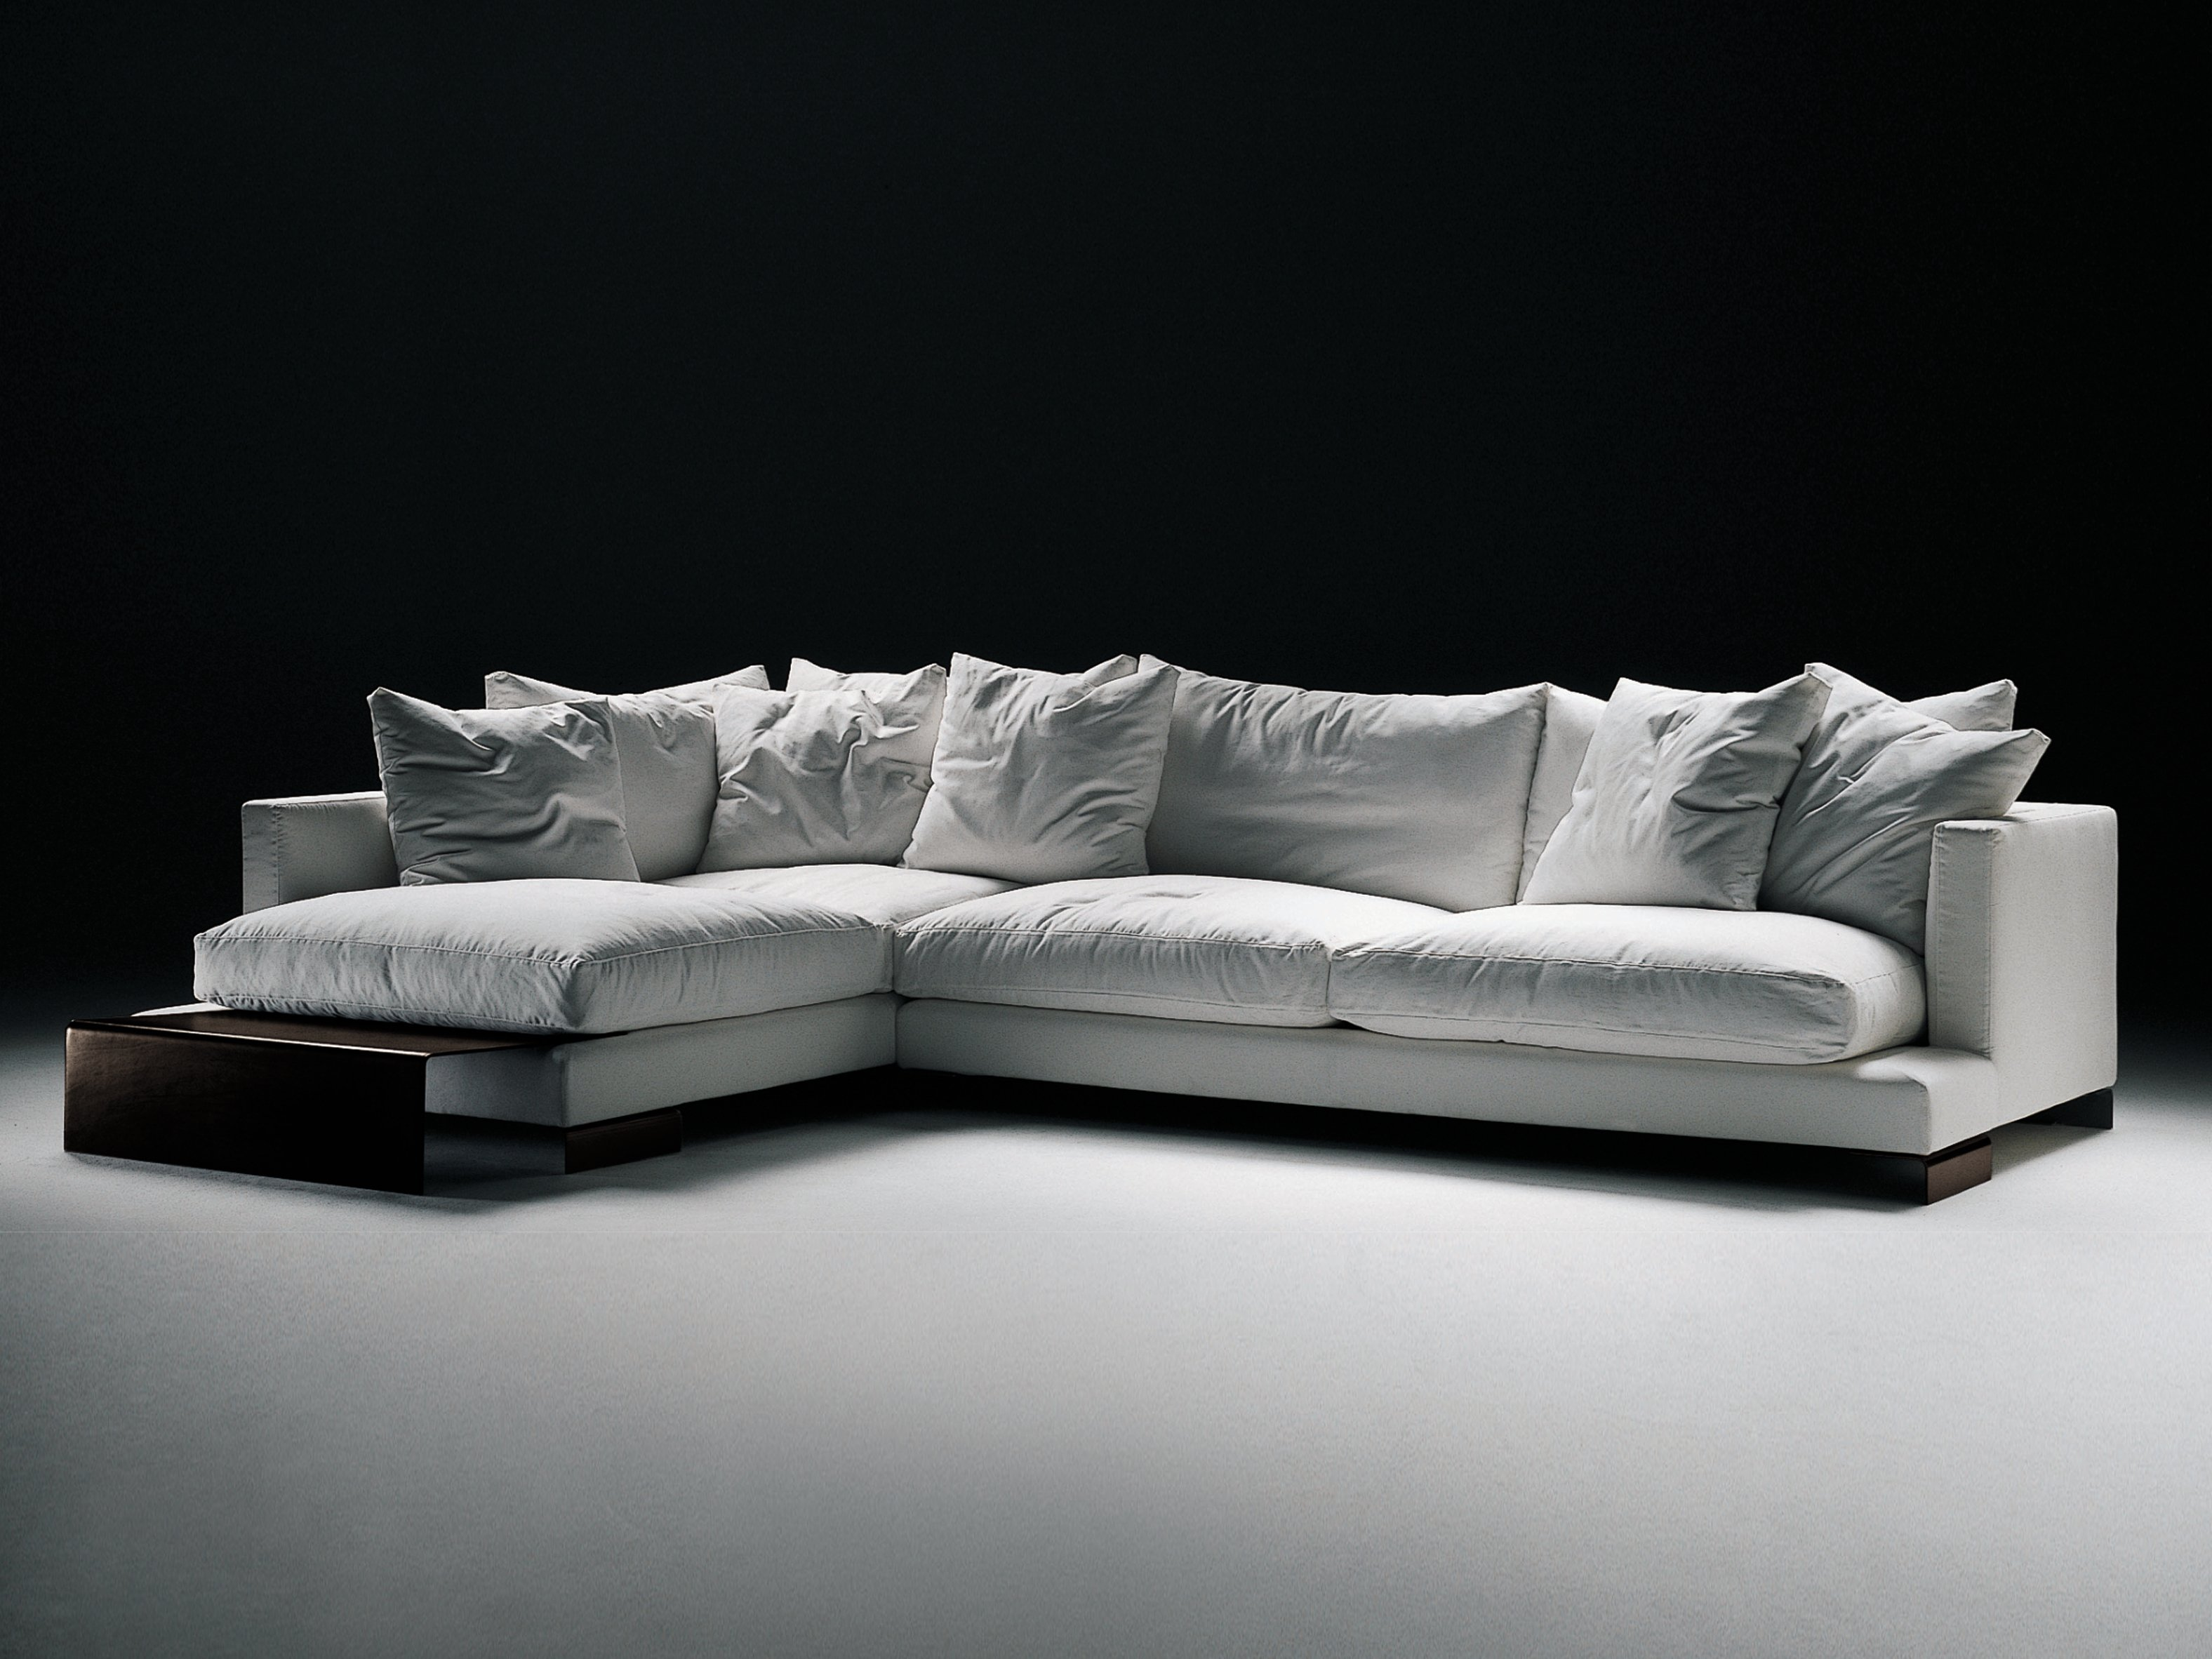 LONG ISLAND Corner sofa by FLEXFORM design Ufficio Tecnico  : prodotti 125807 reld1f6b8785831415bb031f8459a90e15f from www.archiproducts.com size 3152 x 2364 jpeg 4893kB